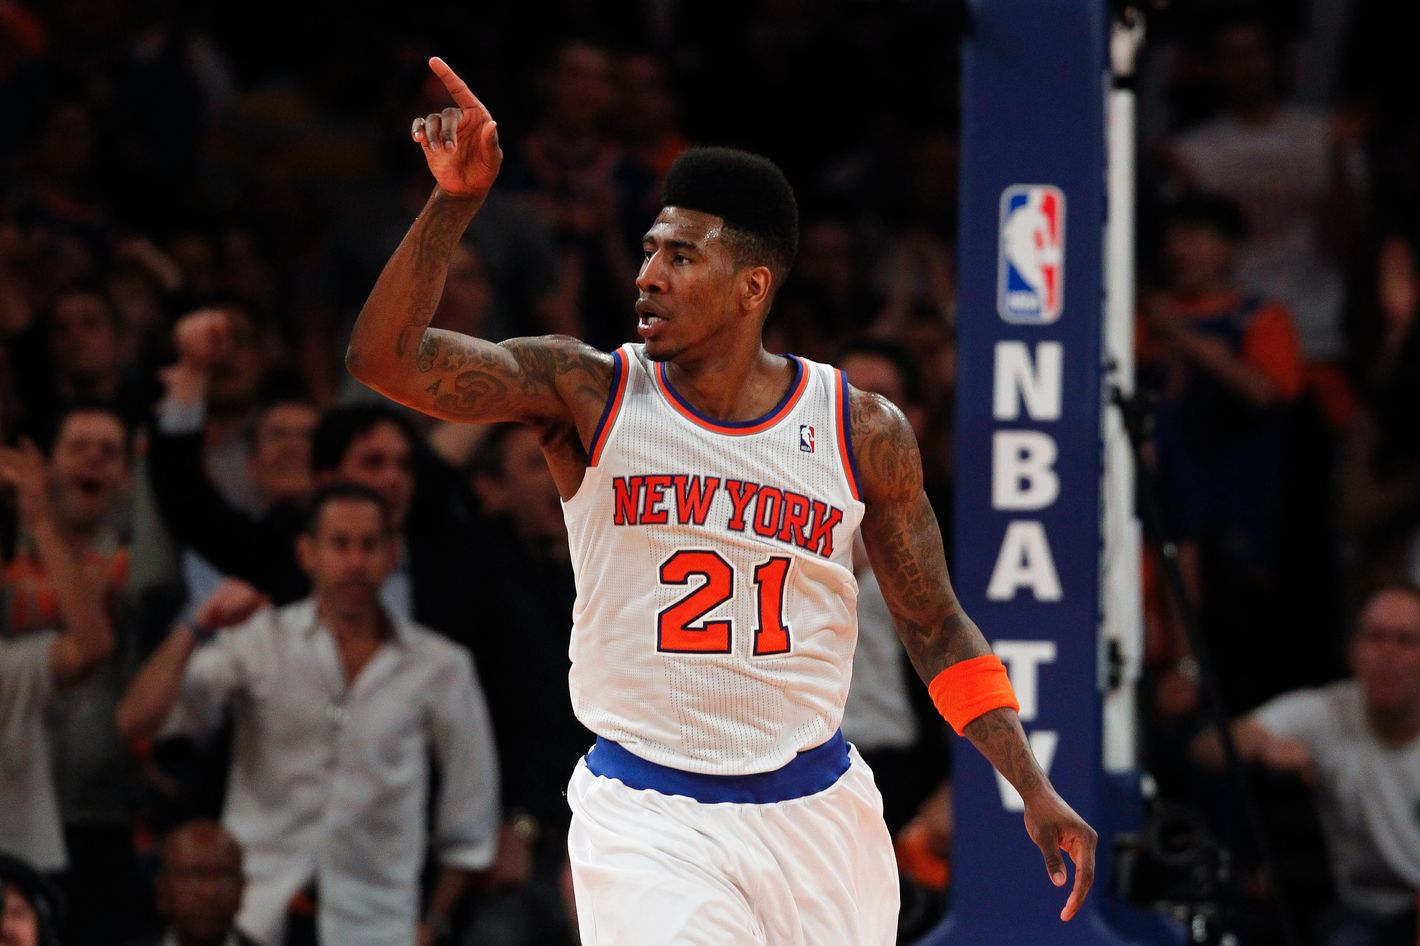 NEW YORK, NY - MAY 7:   Iman Shumpert #21 of the New York Knicks reacts against the Indiana Pacers during Game Two of the Eastern Conference Semifinals of the 2013 NBA Playoffs at Madison Square Garden on May 7, 2013 in New York City. NOTE TO USER: User expressly acknowledges and agrees that, by downloading and/or using this photograph, user is consenting to the terms and conditions of the Getty Images License Agreement. (Photo by Jeff Zelevansky/Getty Images)